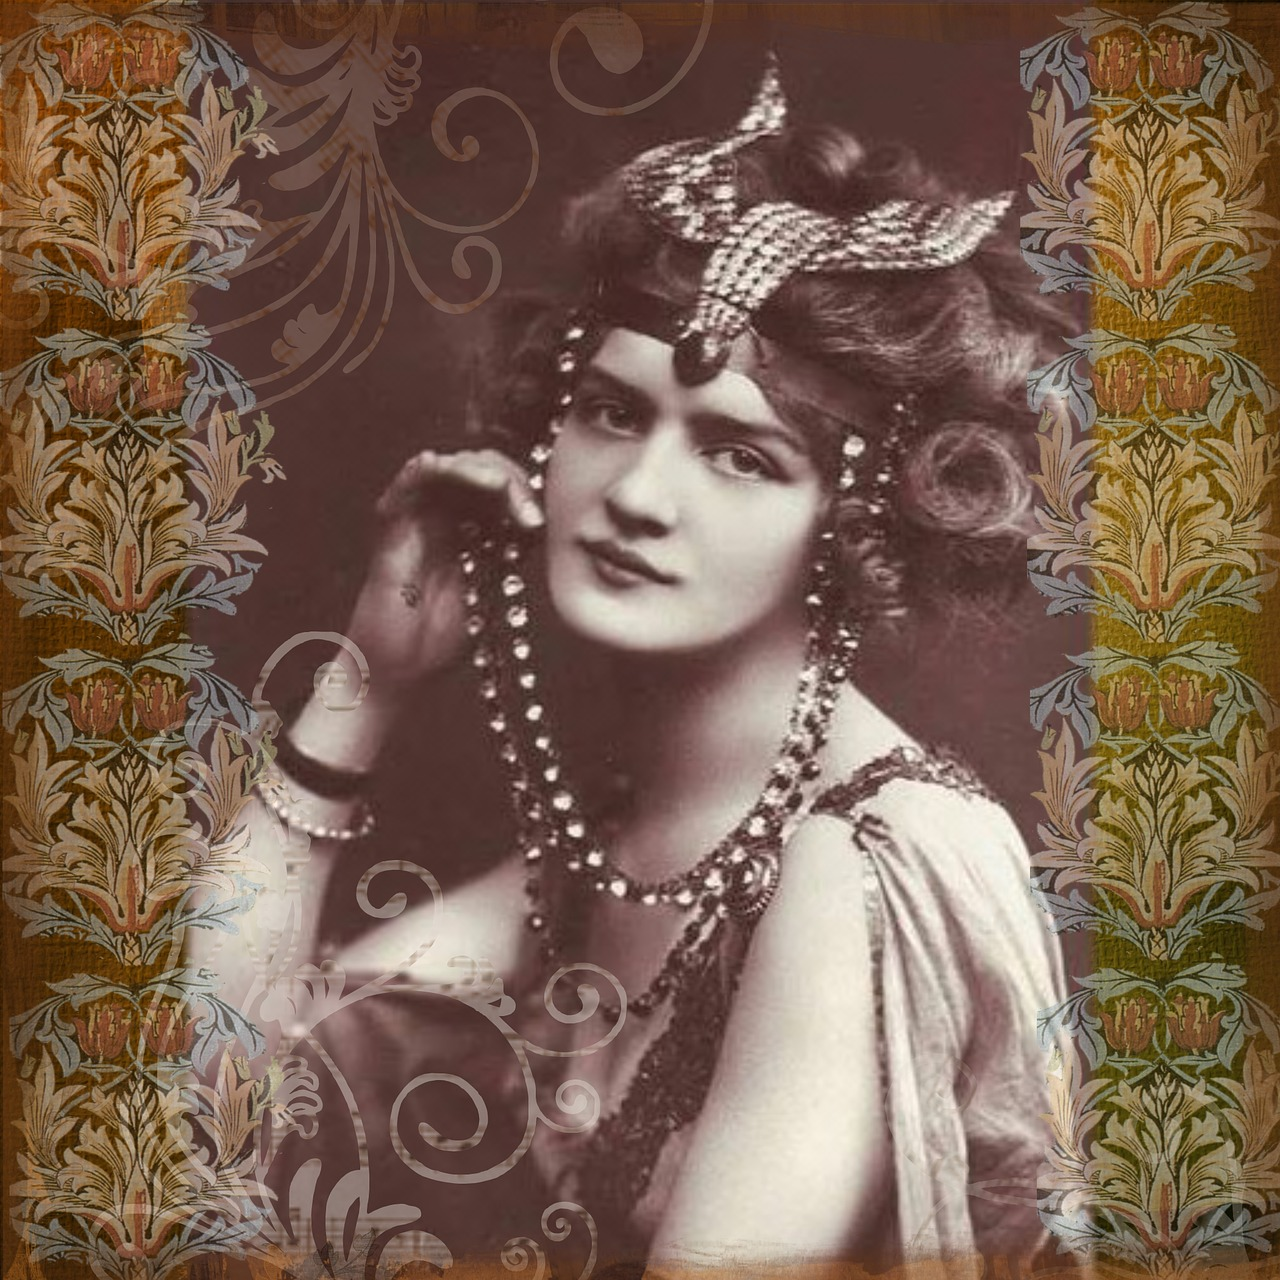 vintage,lady,digital art,distressed,antique,ziegfried,girls,woman,sexy,female,vintage girl,vintage fashion,1920s,young,attractive,style,flirt,hollywood,glamour,fashion lady,model,sepia,elegance,hair,portrait,sensuality,elegant,lovely,people,collage,composition,free pictures, free photos, free images, royalty free, free illustrations